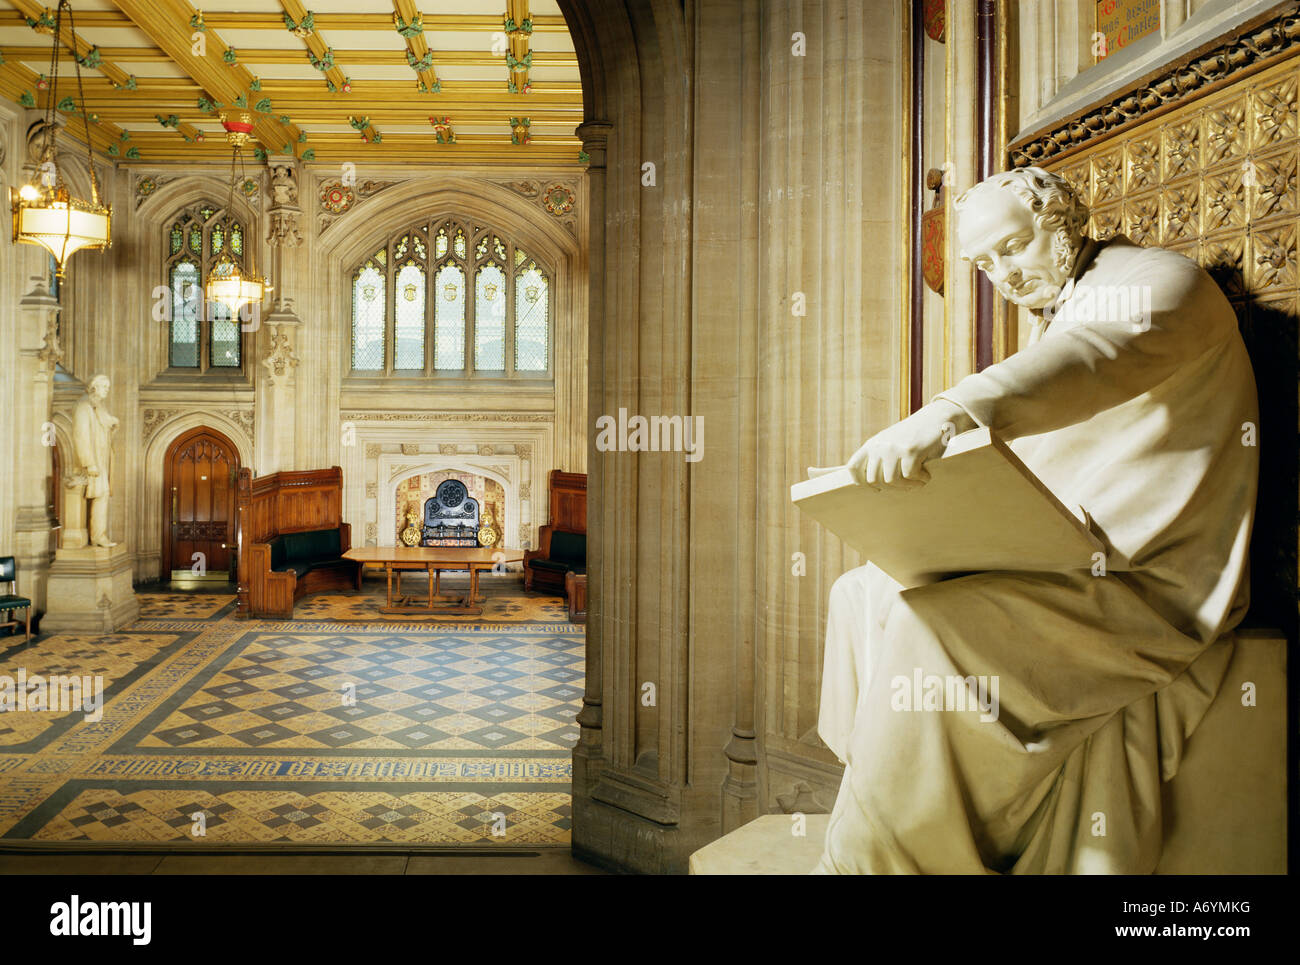 Lower waiting hall with statue of the architect Barry House of Commons Houses of Parliament Westminster London England - Stock Image